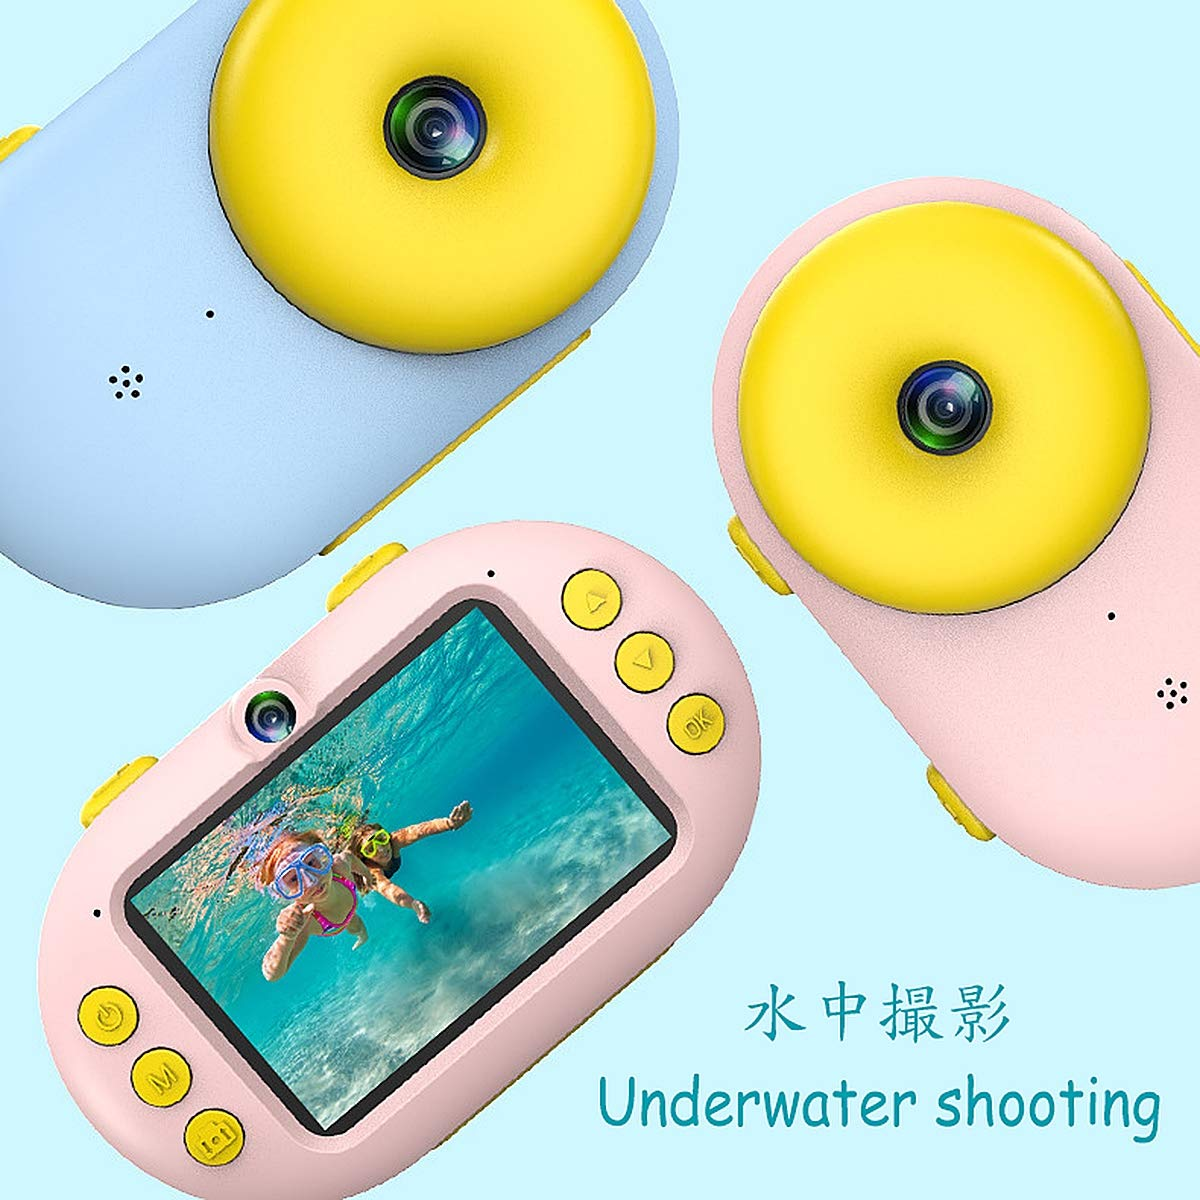 Aegilmc Child Waterproof WiFi Digital Camera, SLR Motion Double Lens Diving Camera, 800MP 1080P Kids Action Camera Sports Camcorder,Pink by Aegilmc (Image #8)